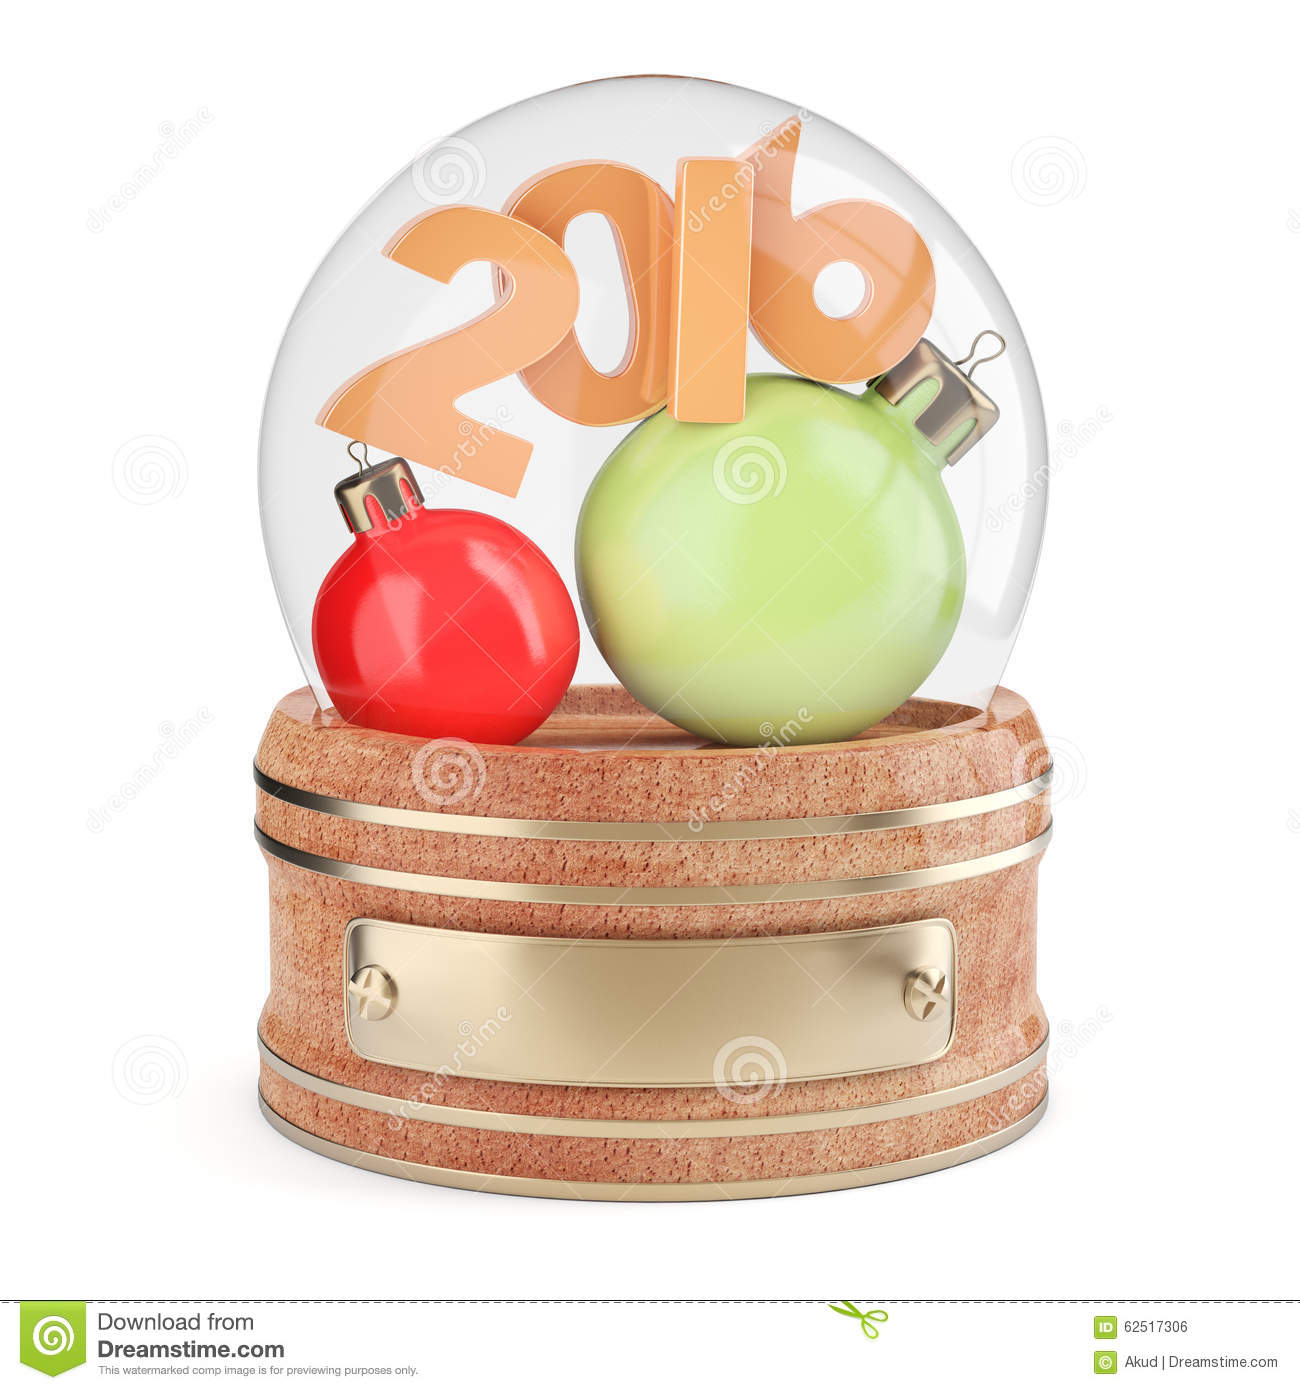 Snow Globe With 2016 Digits And Christmas Bauble Stock Illustration ...